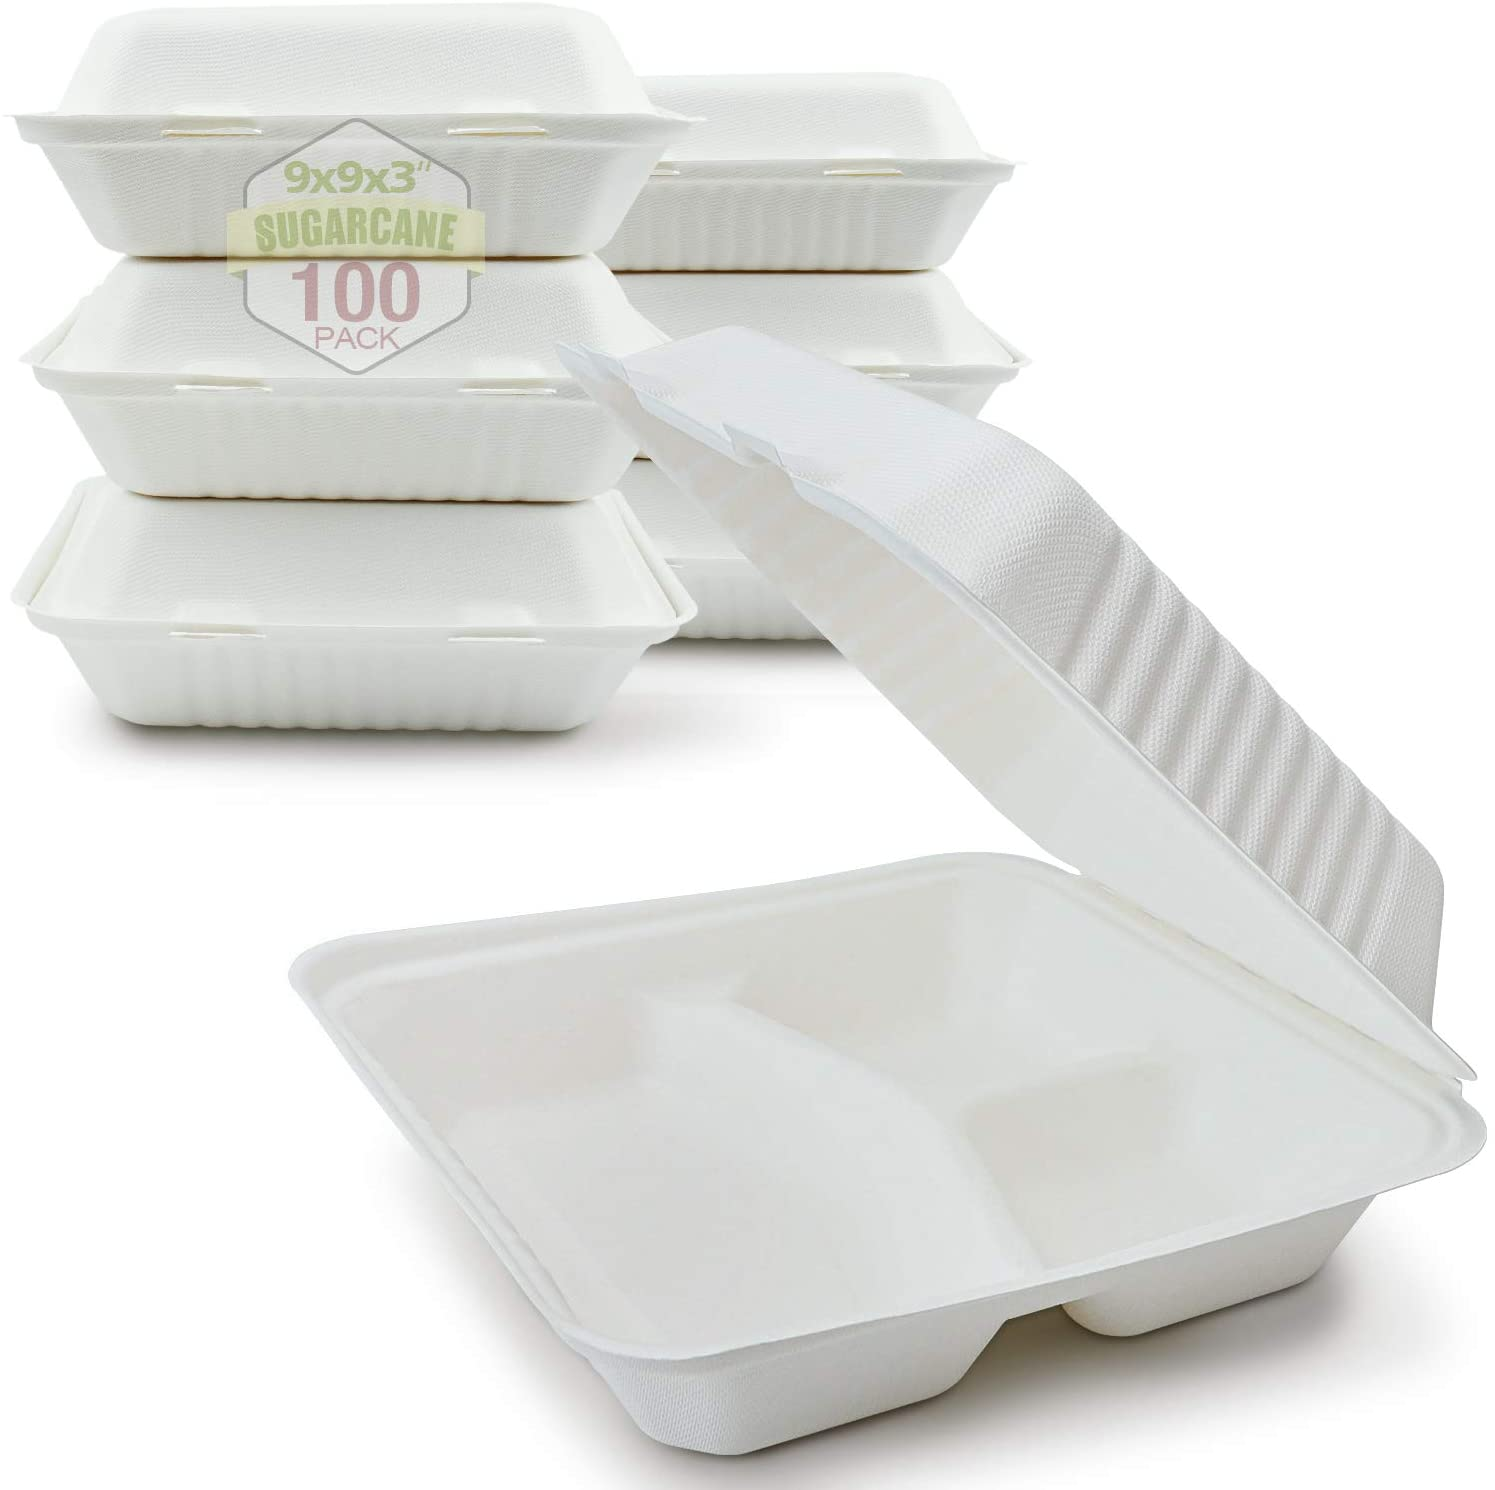 Green Earth 9-Inch, 100-Count, 3-Compartment, Compostable Clamshell, Natural Bagasse (Sugarcane Fiber), Take-Out/to-Go Food Boxes - Biodegradable Containers, Hinged Lid - Microwave-Safe - Gluten-Free